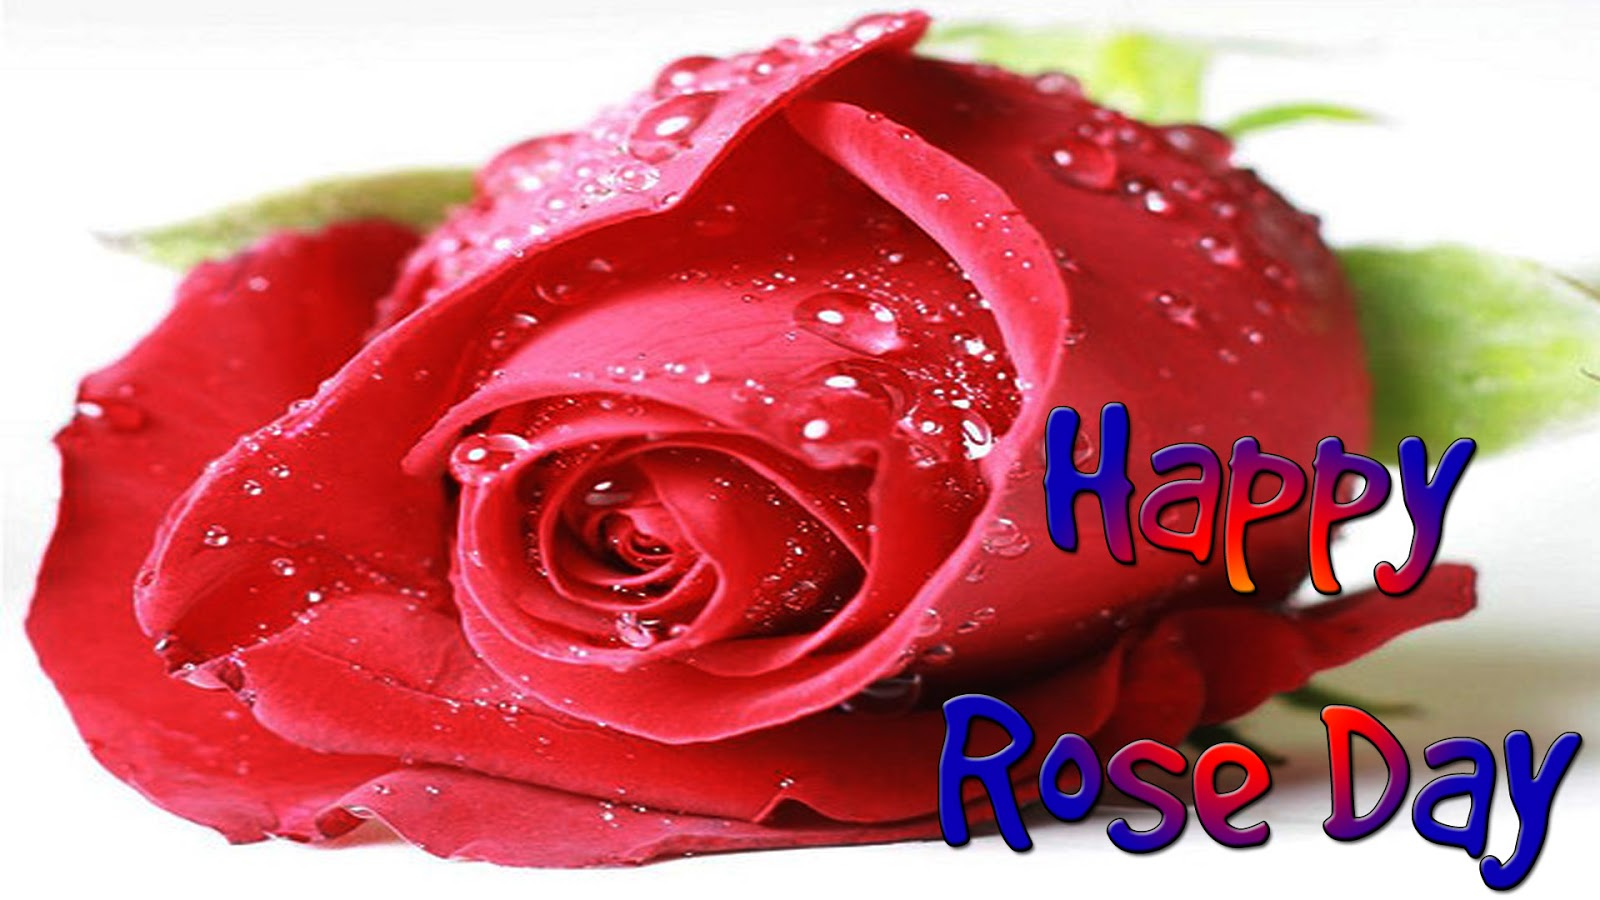 photos of rose day